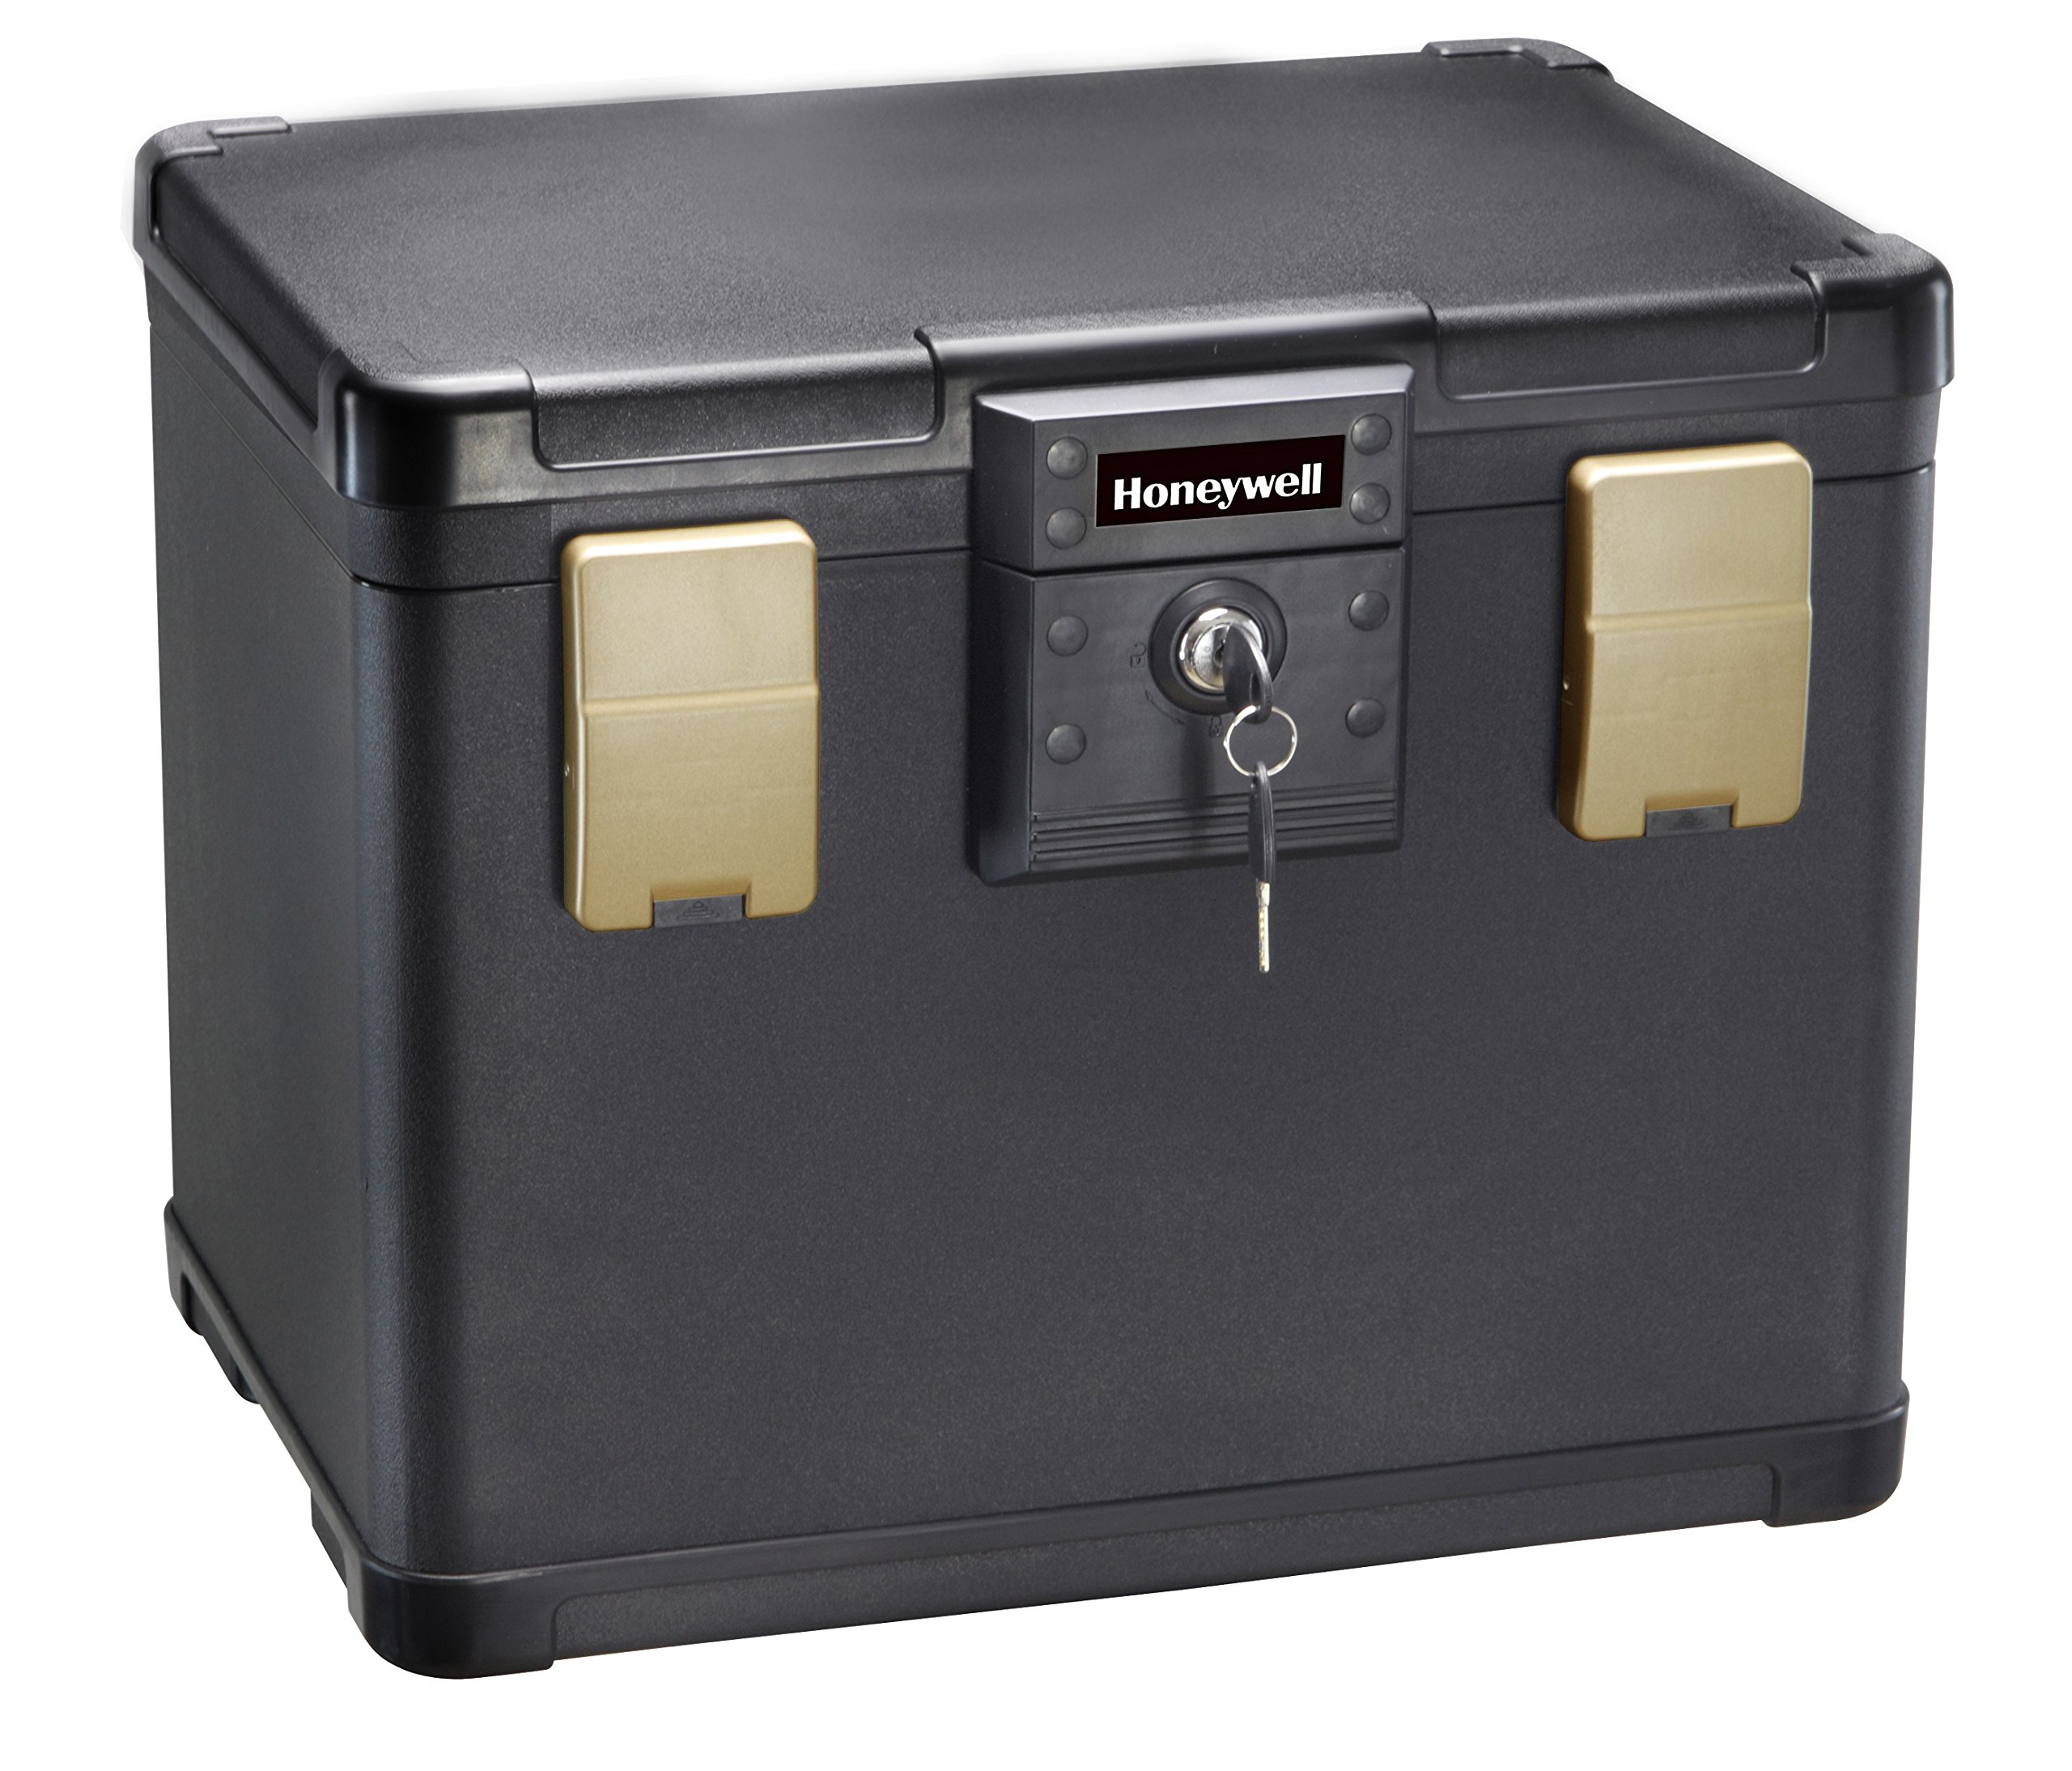 HONEYWELL - 30 Minute Fire Safe Waterproof Filing Safe Box Chest (fits Letter and A4 Files), Medium, 1106